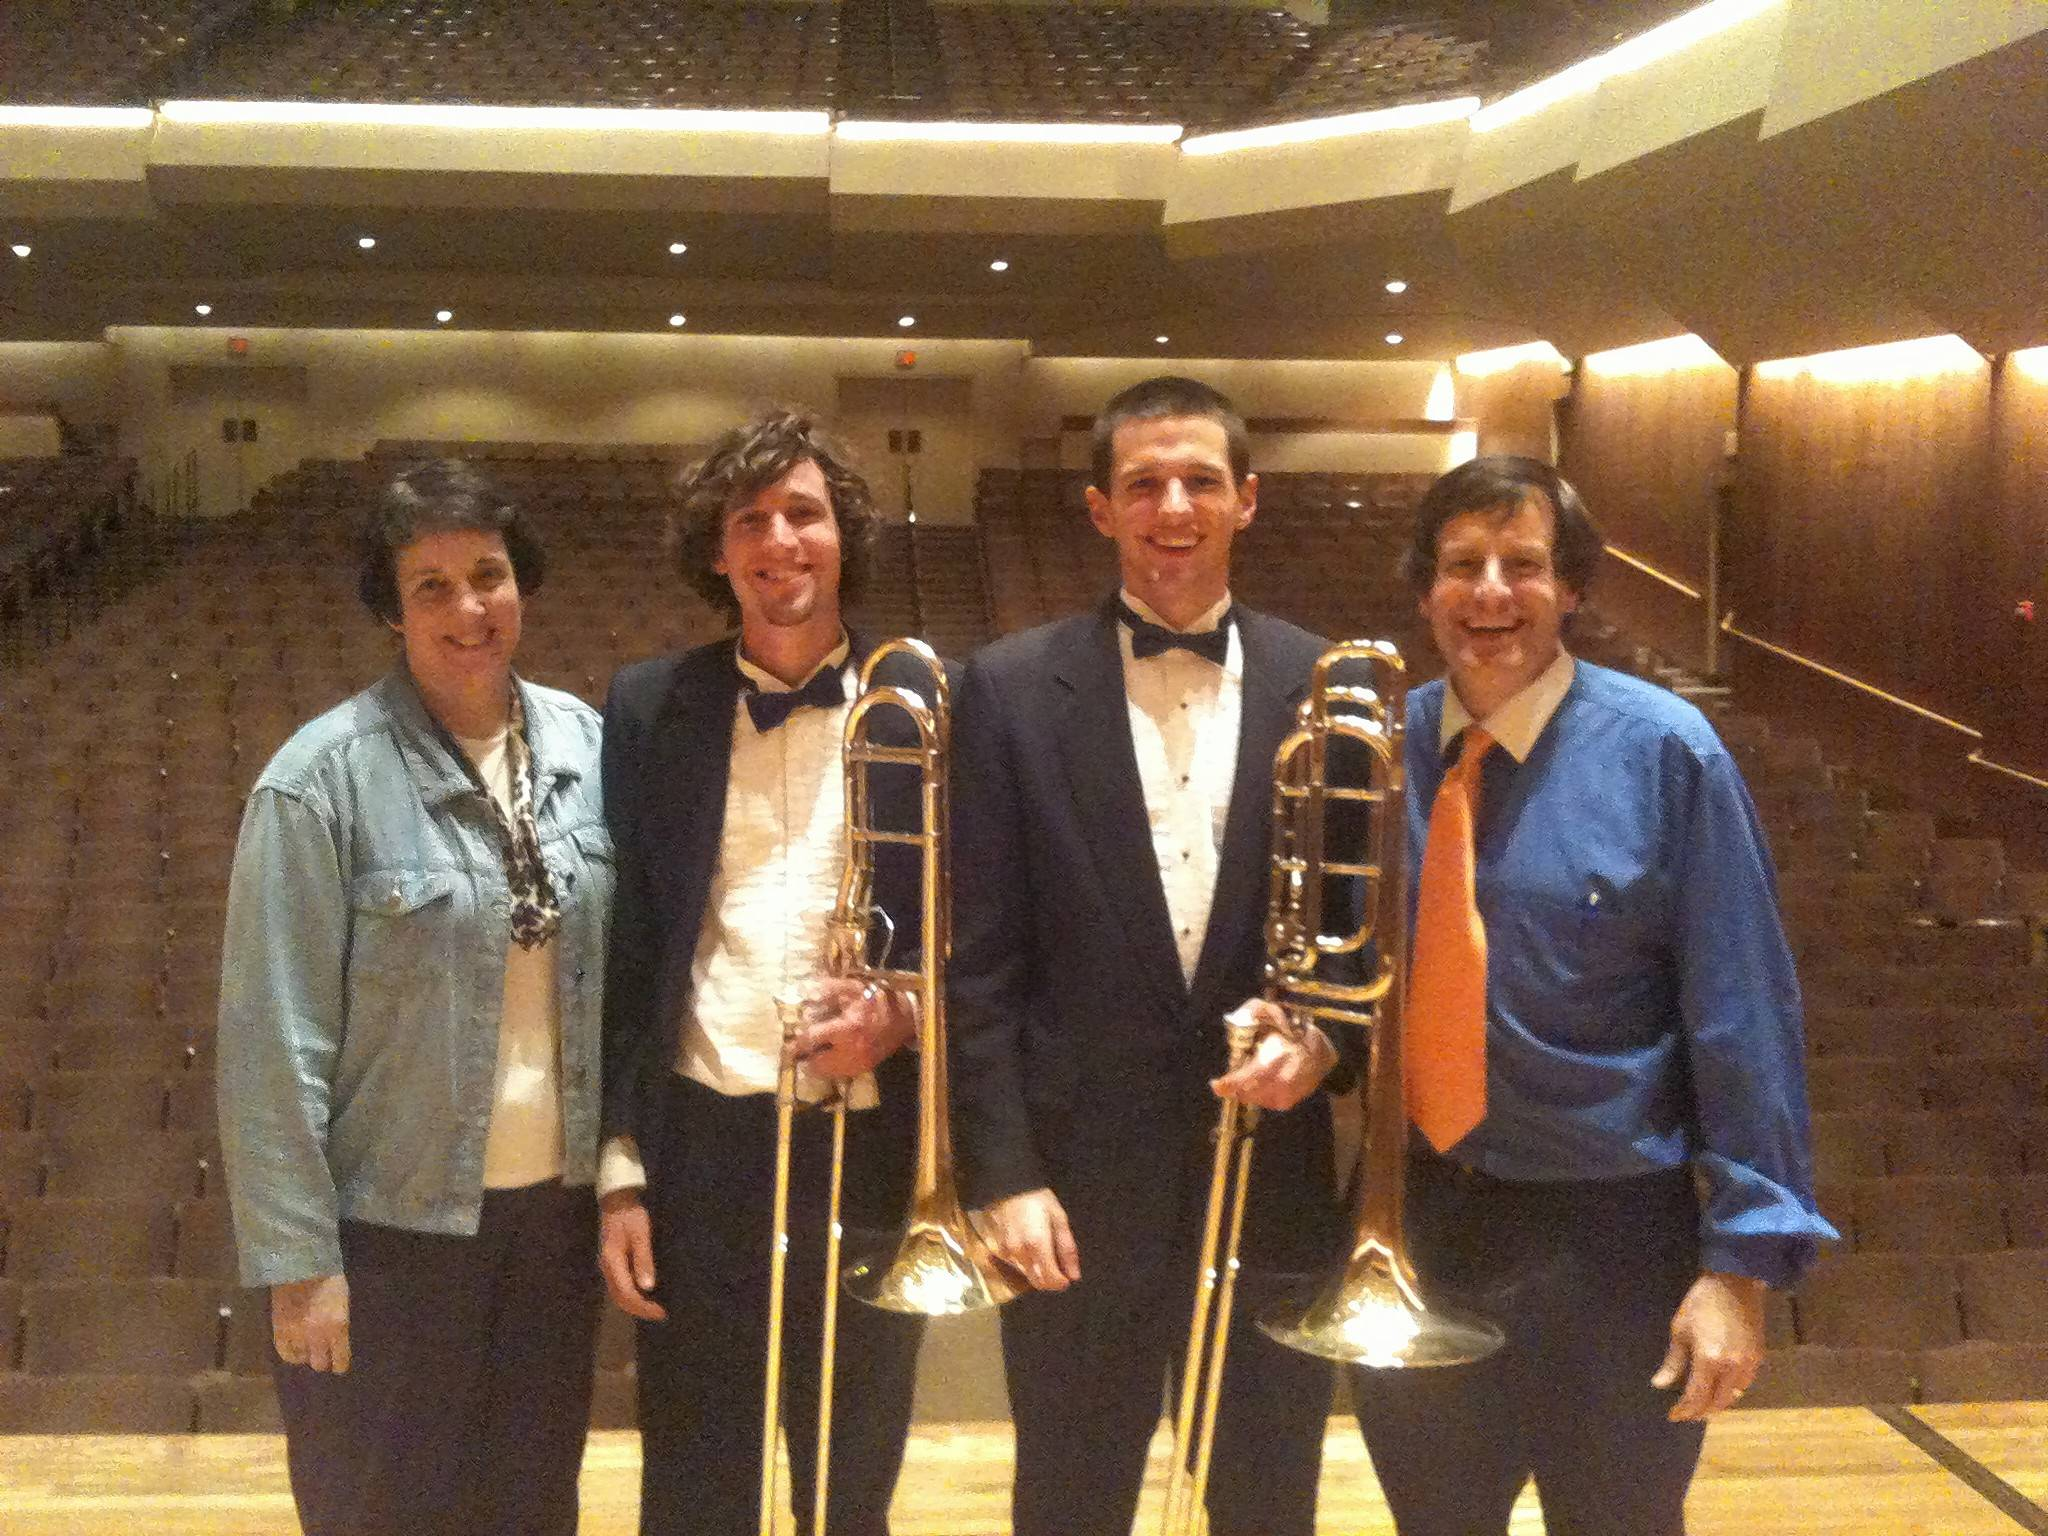 Like their father, Ed Jacobi's two sons graduated from University of Illinois with degrees in music education. Here, Jacobi and his wife, Robin, celebrate with sons Andrew and Brendan following a performance at University of Illinois in 2011.